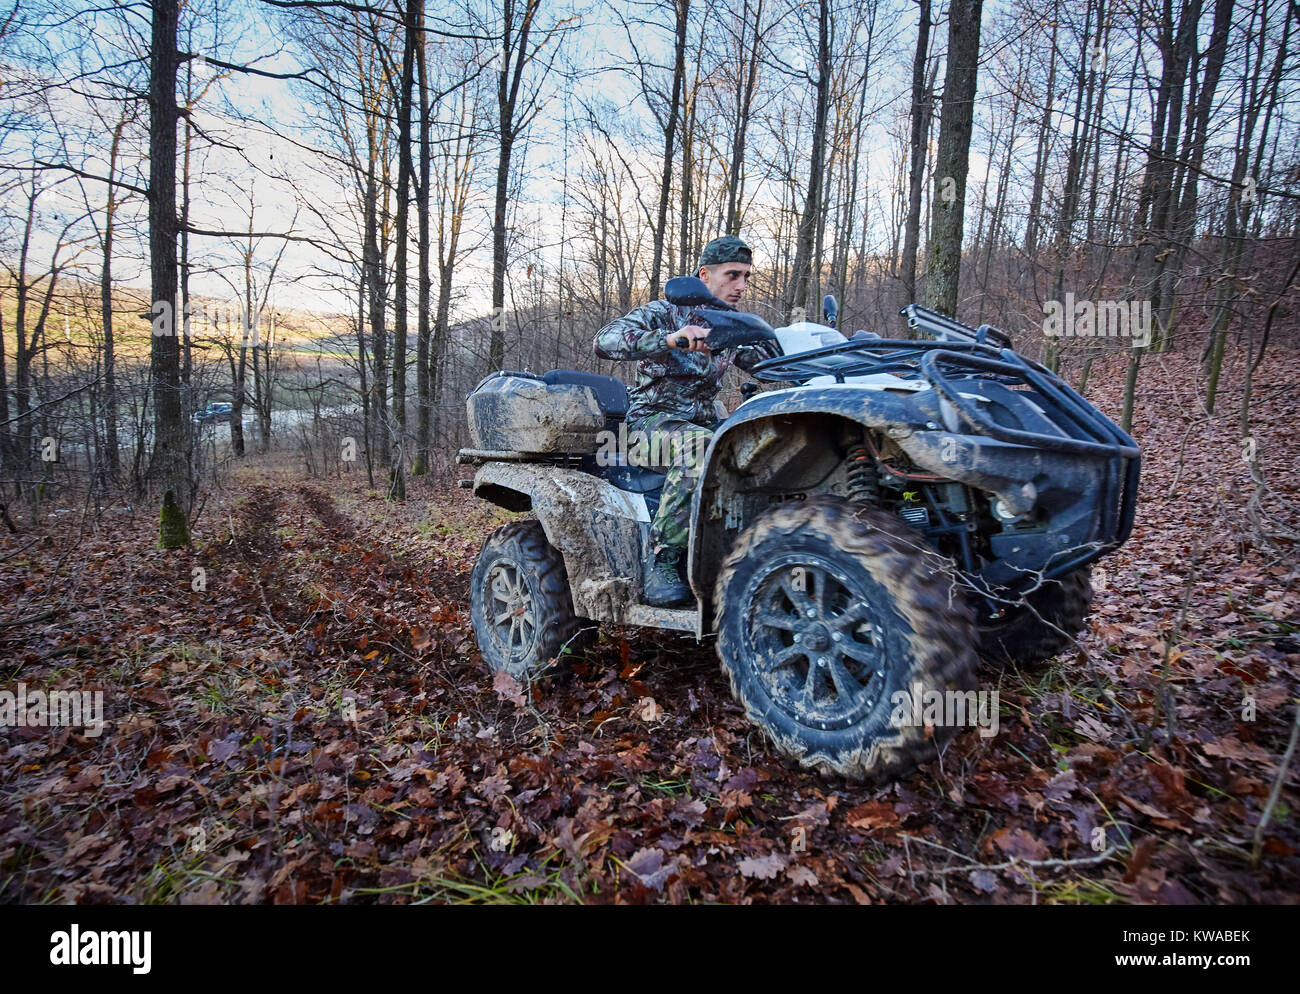 Young hunter on a quad bike searching for game in the forest - Stock Image